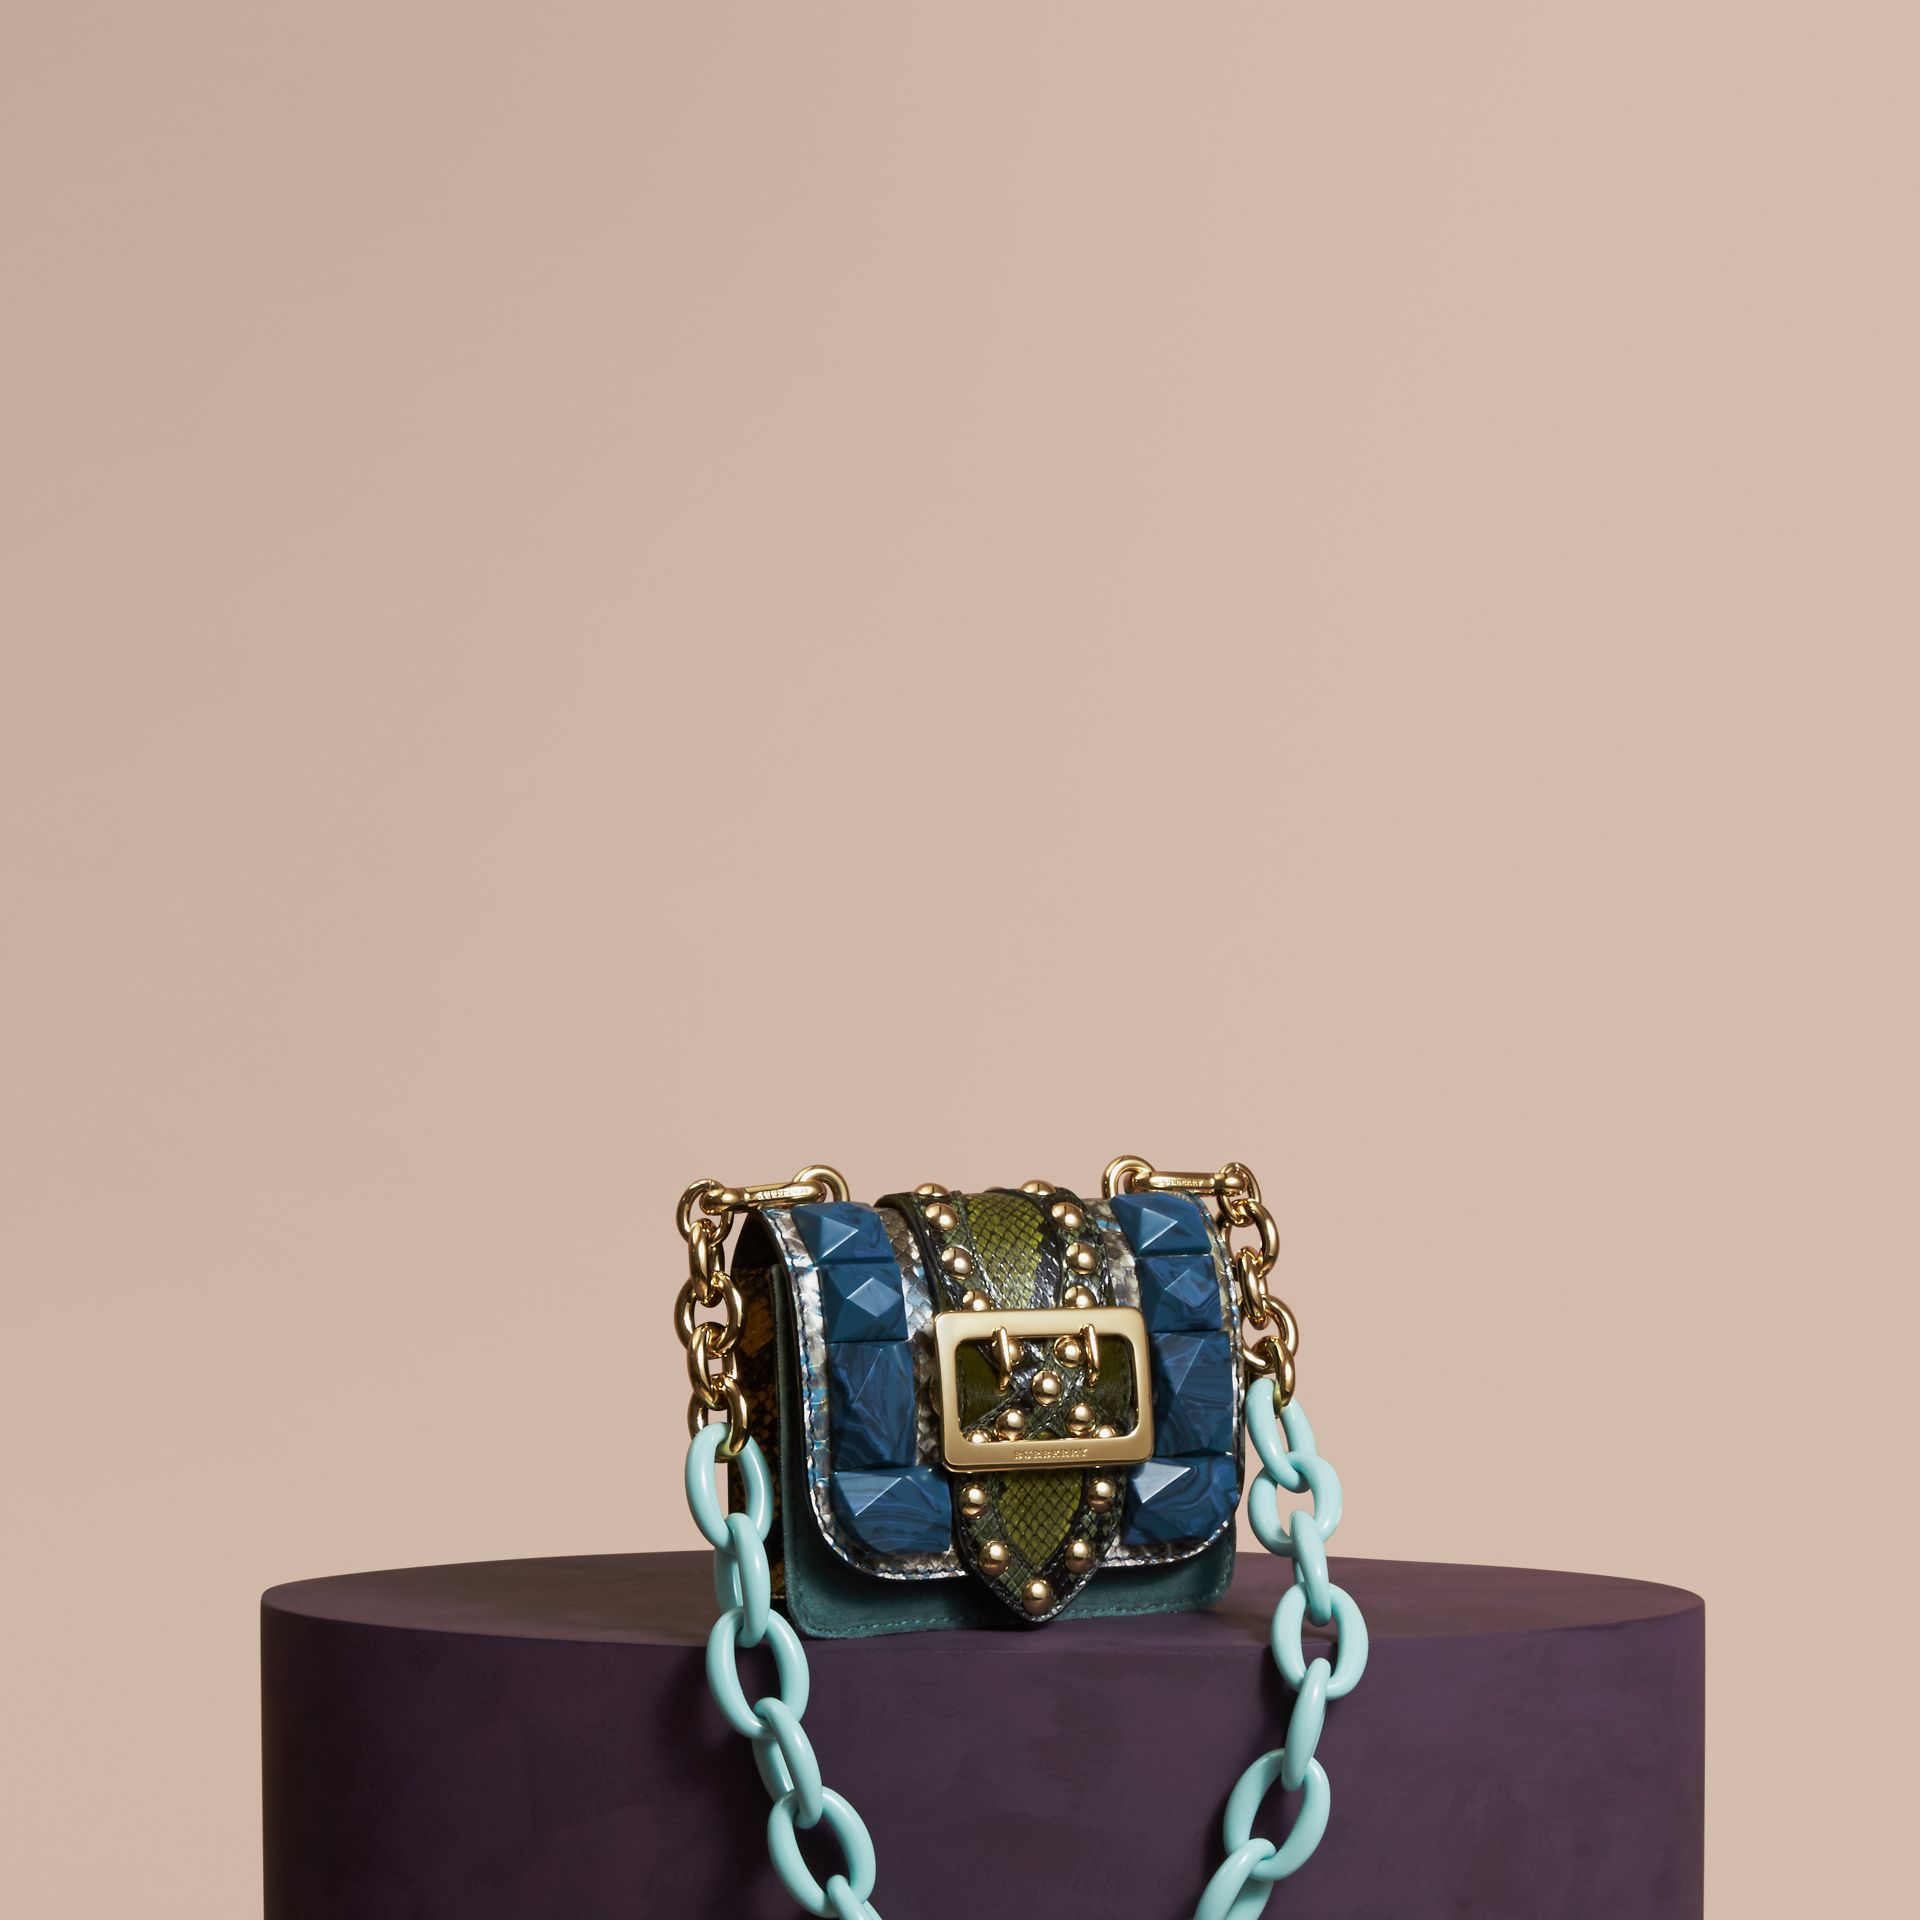 Pale opal The Mini Square Buckle Bag in Velvet and Snakeskin - gallery image 1